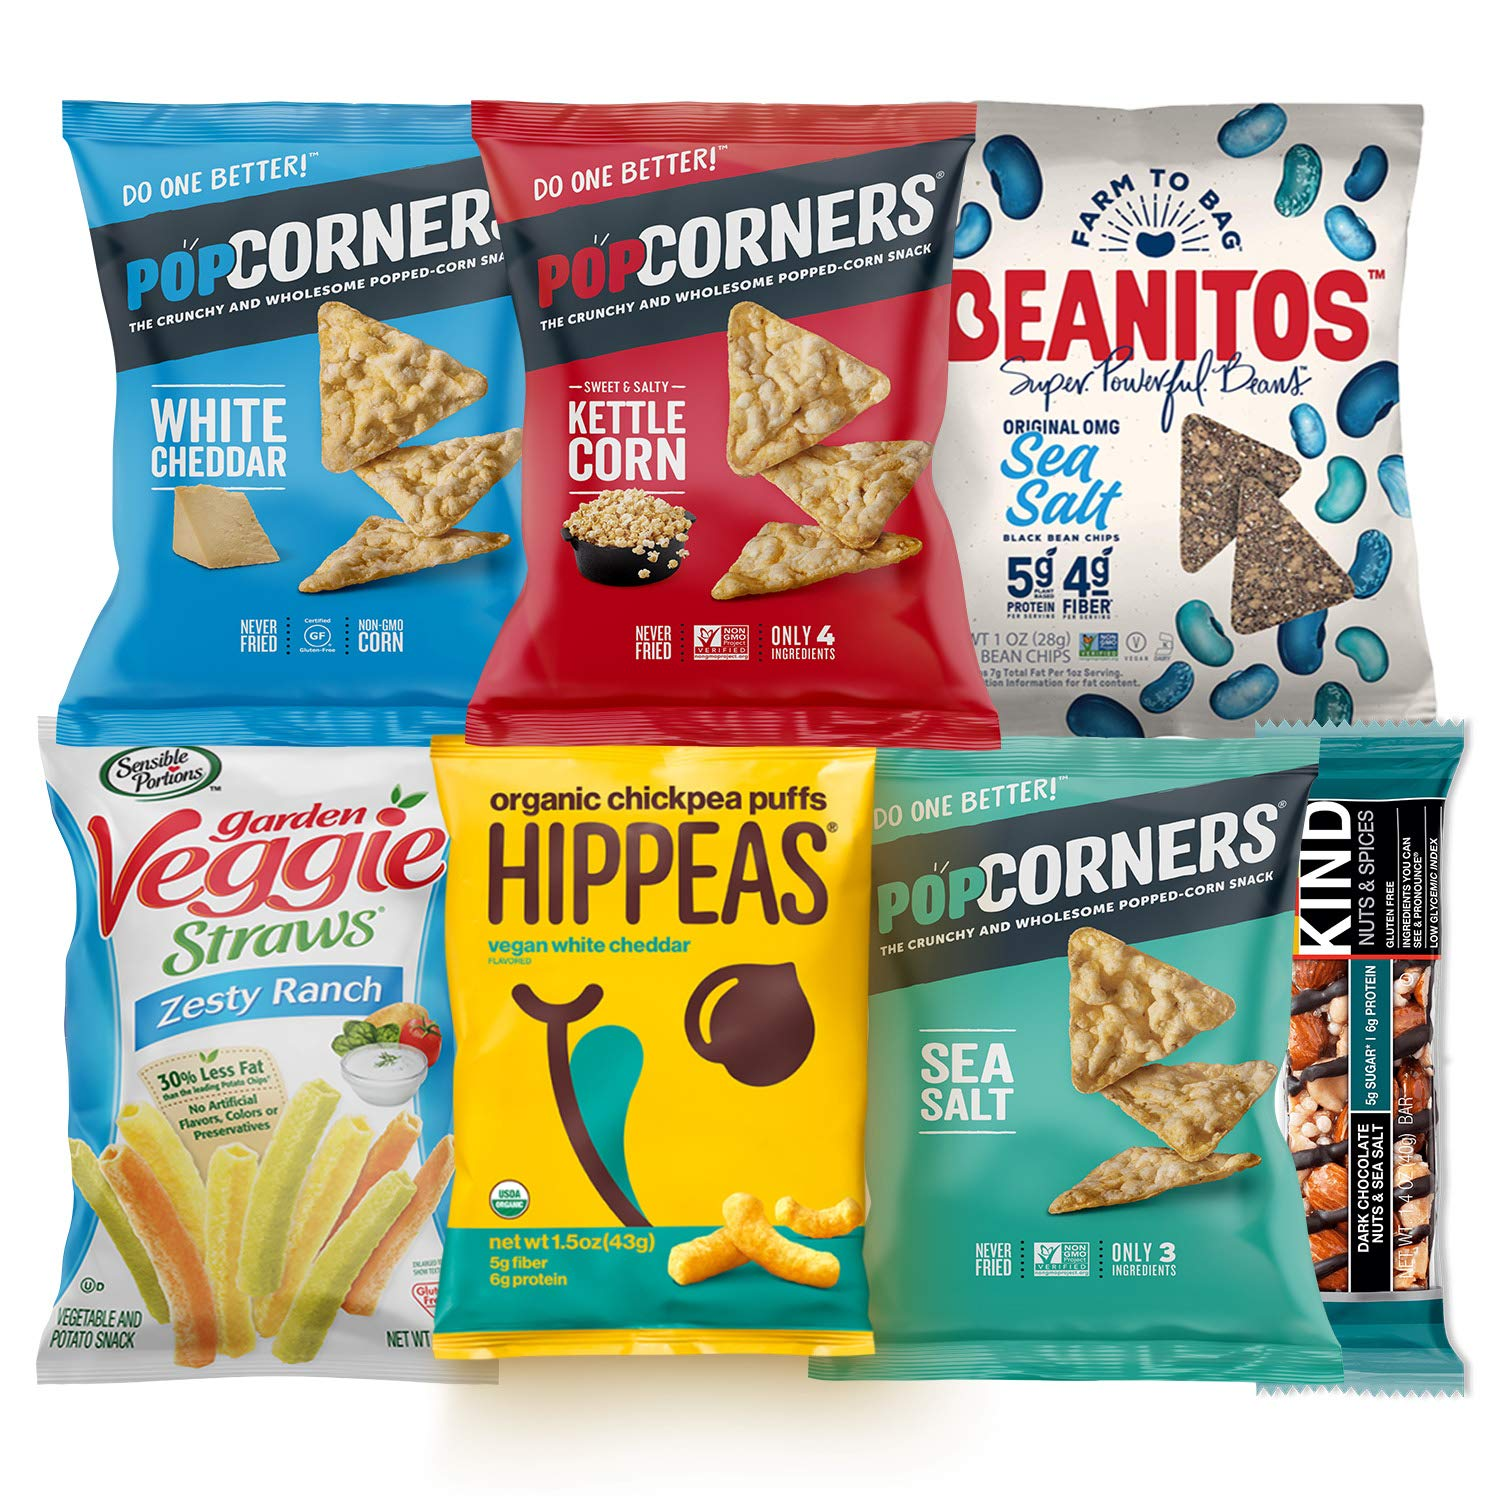 Premium NON GMO & Gluten Free Gourmet Healthy Snacks Gift Box Care Package Variety Pack (15 Count) by Variety Fun by Custom Varietea (Image #2)